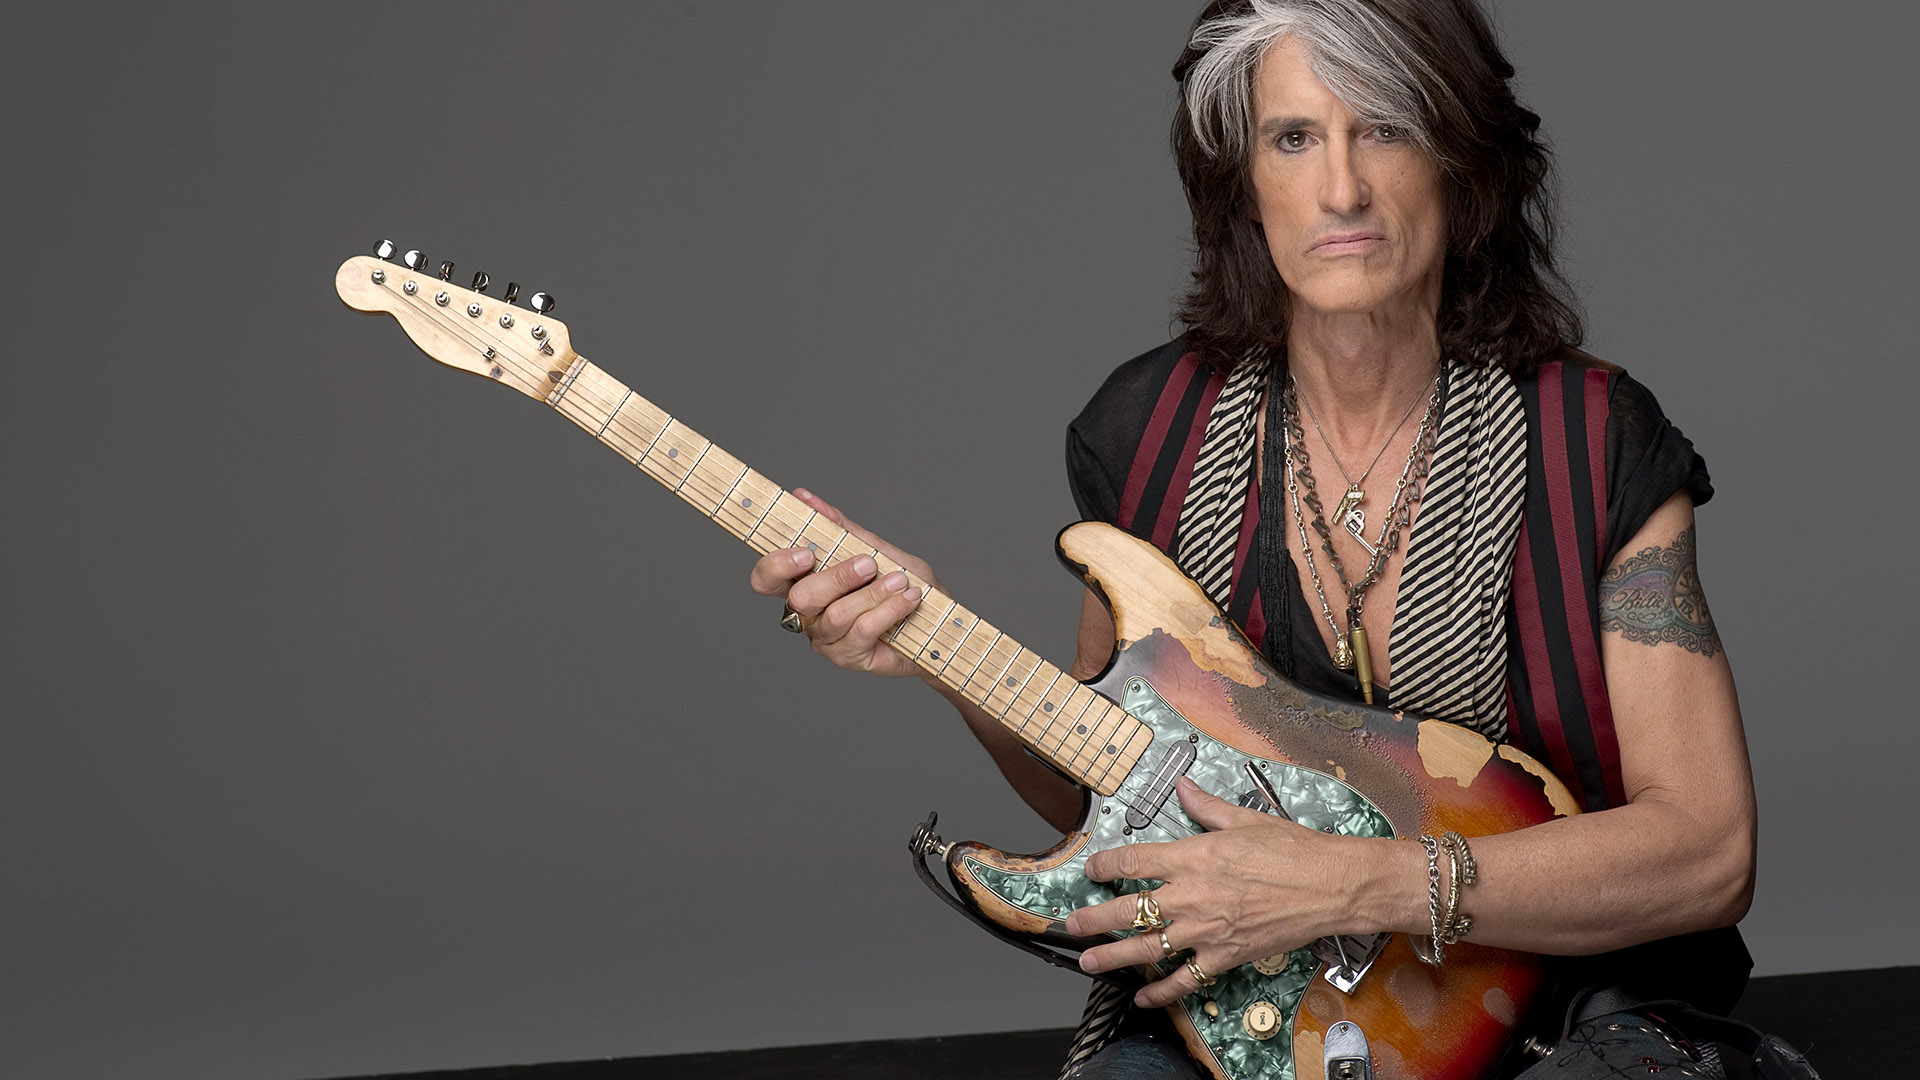 Aerosmith guitarist Joe Perry hospitalised after collapsing on stage in Brooklyn, NYC